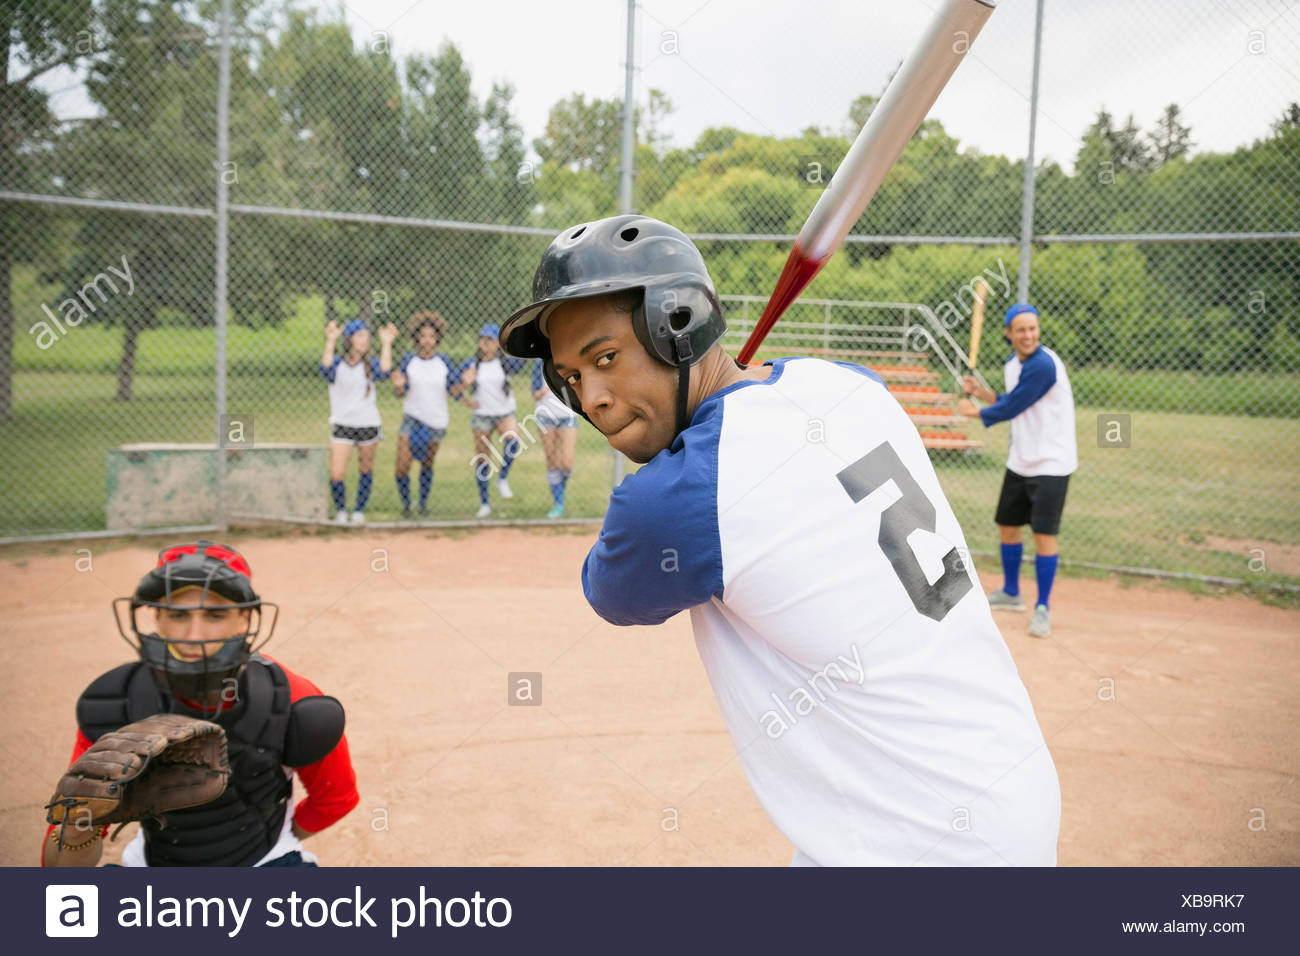 Baseball player ready for ball at home plate - Stock Image